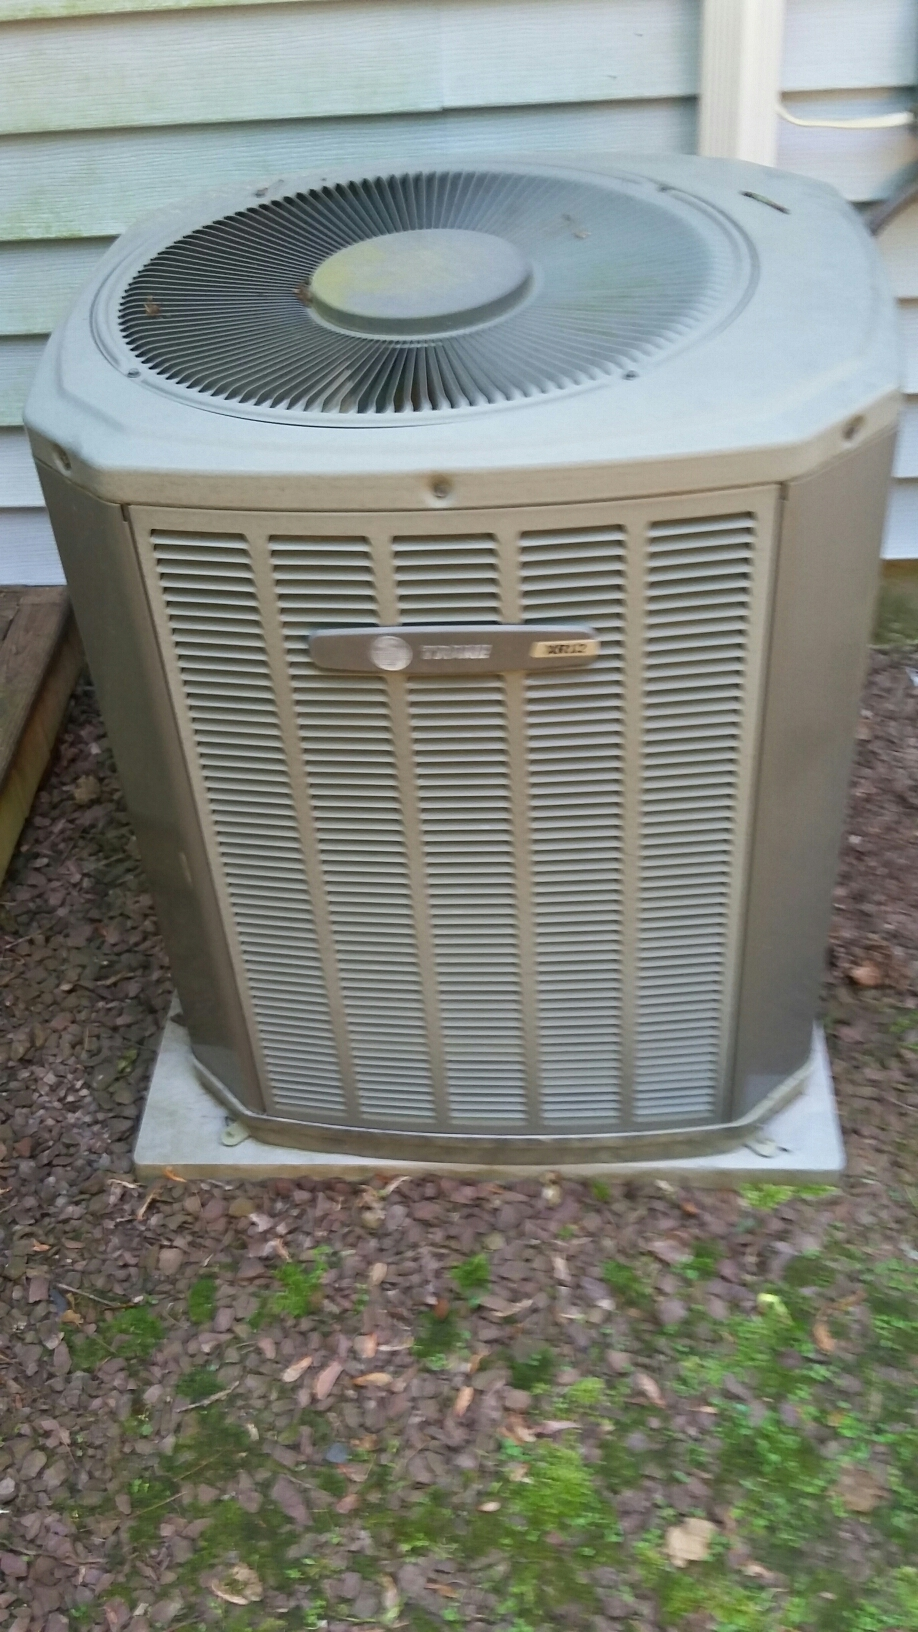 Newtown, PA - Performed an a/c maintenance on a Trade split system.